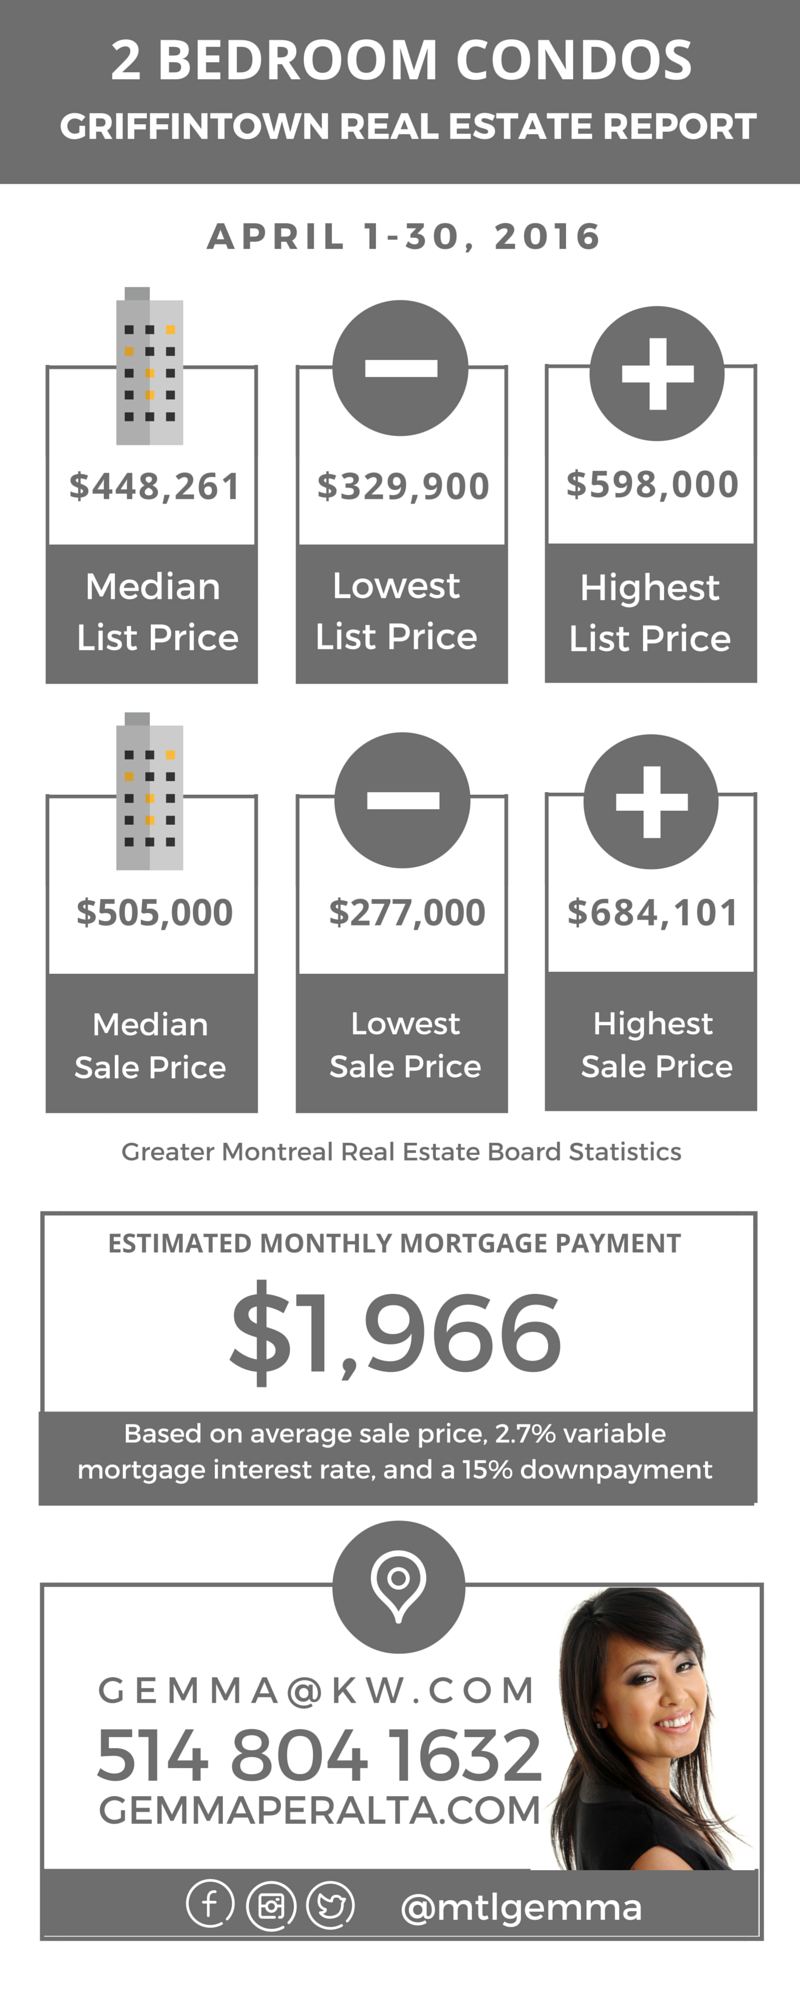 Griffintown Real Estate Report April 2016 03